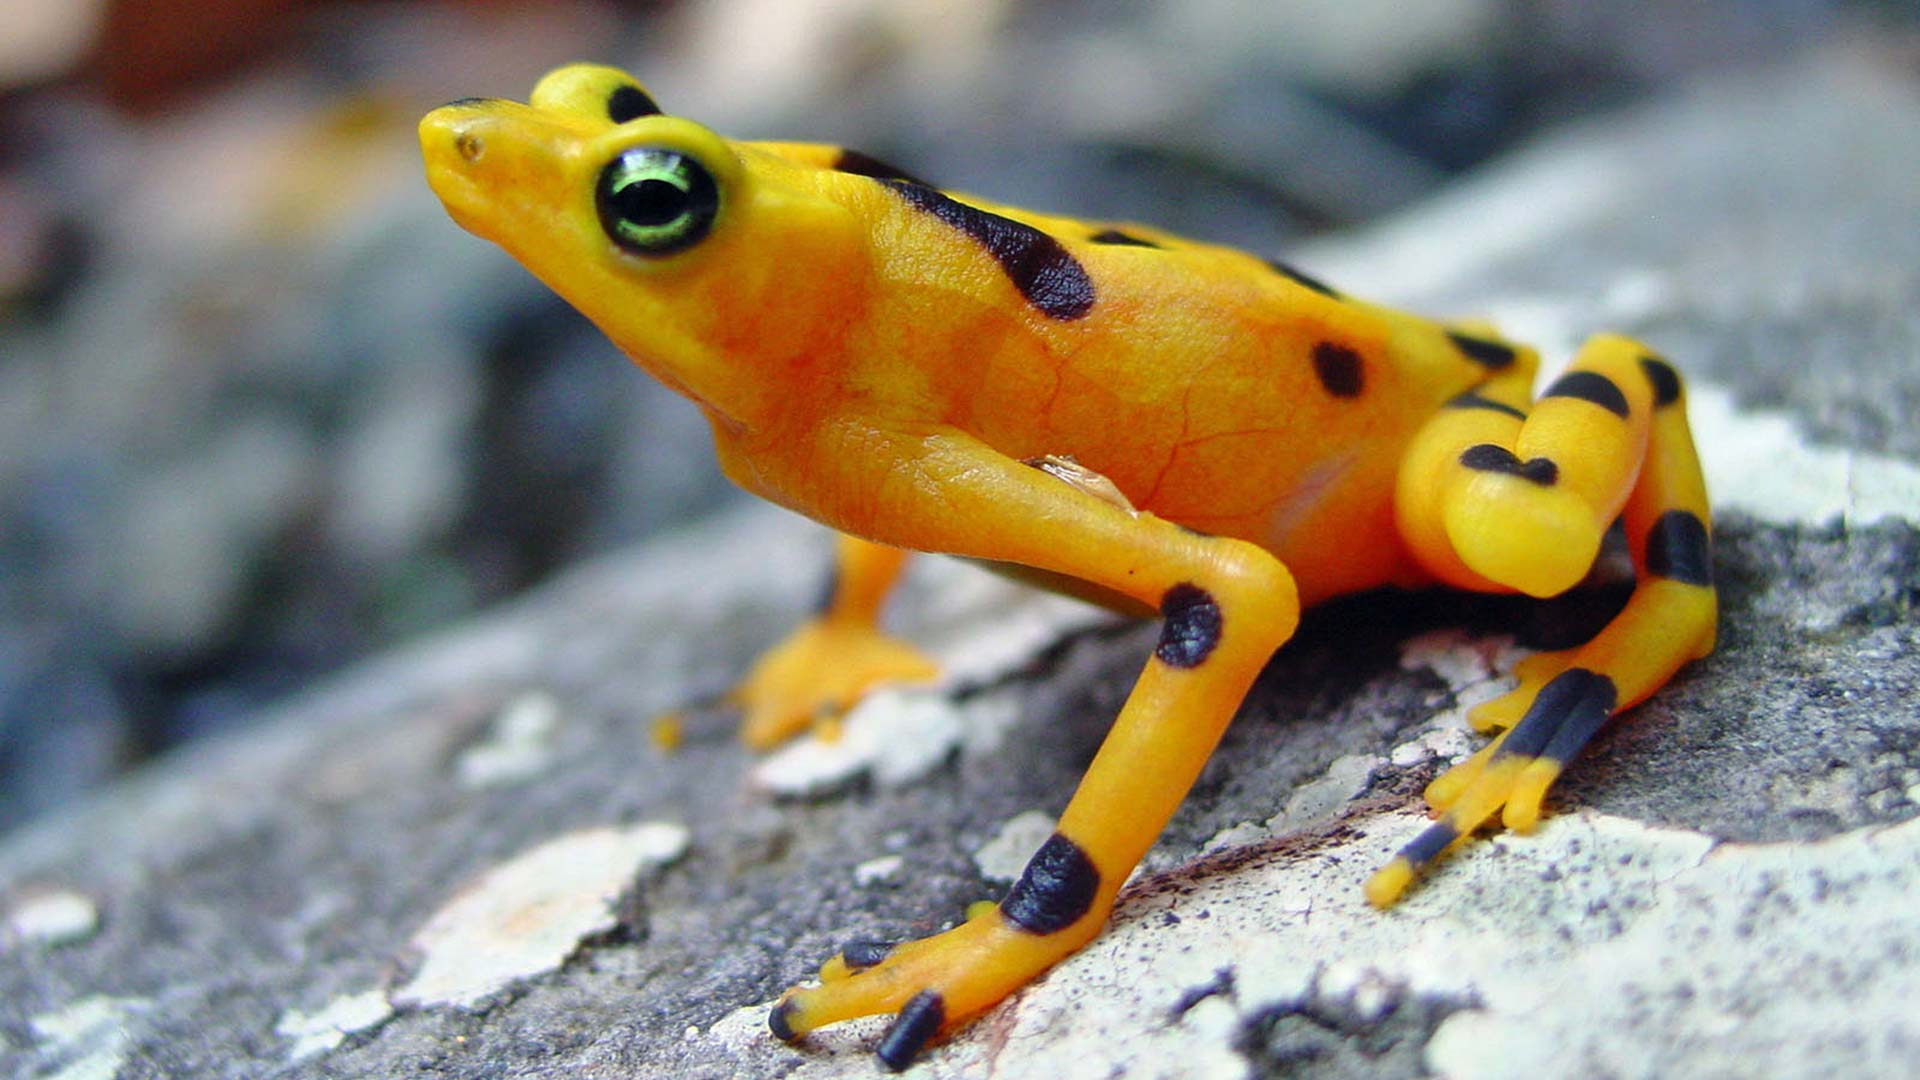 A healthy golden frog in the streams of Panama.